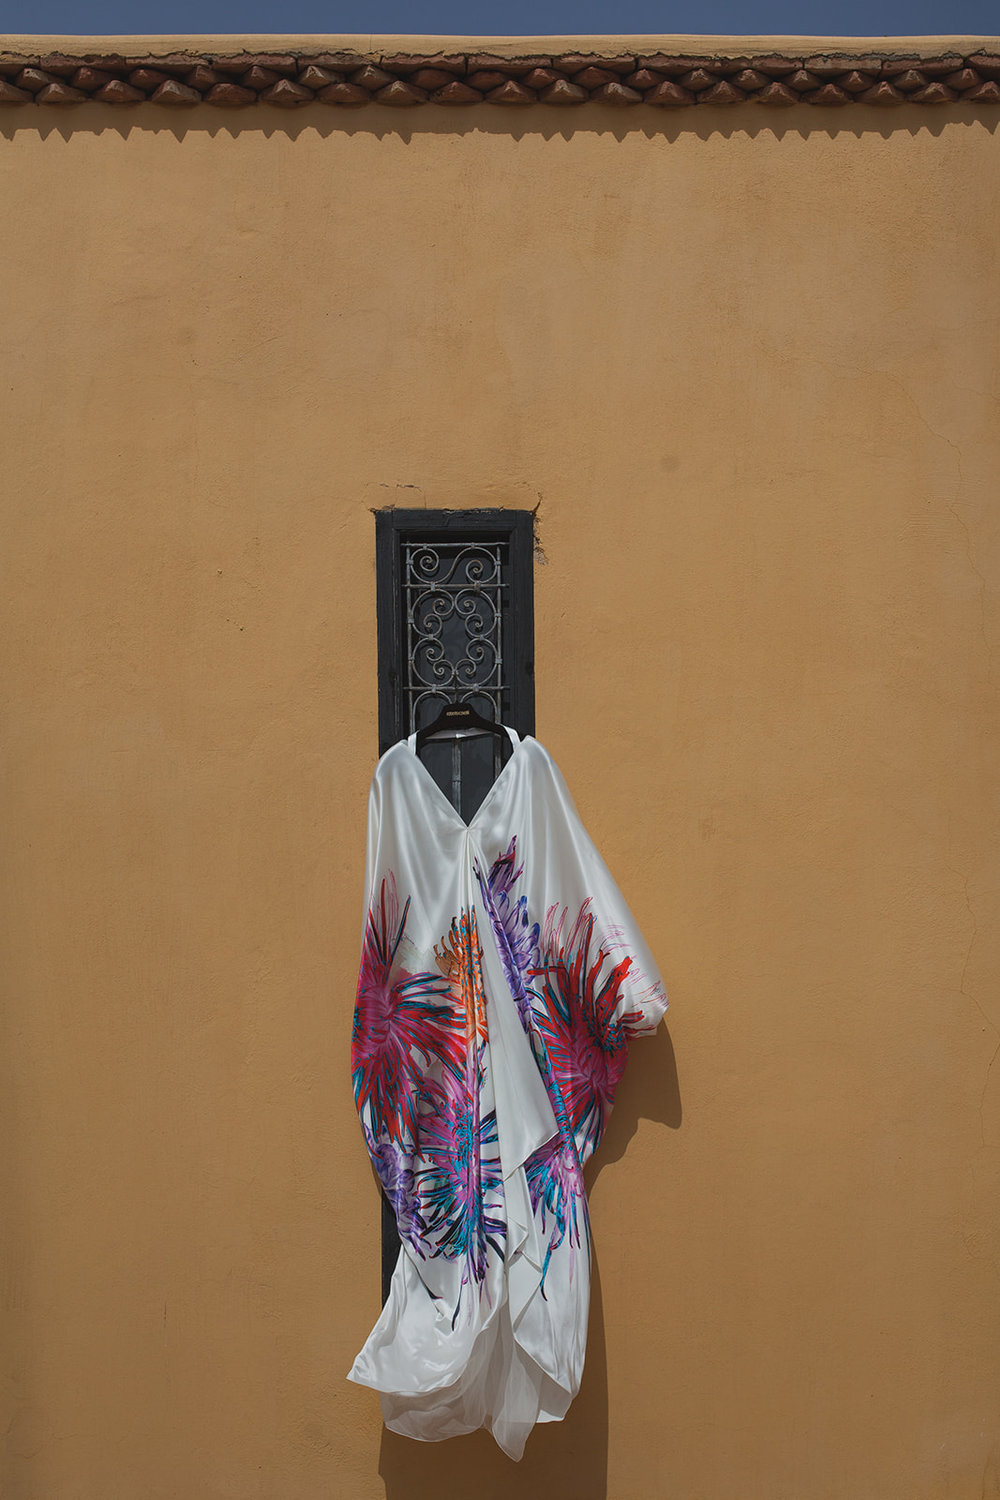 a dress hangs and blows in the breeze. fawakay villas marrakech wedding morrocco wedding photography. stop motion wedding films uk